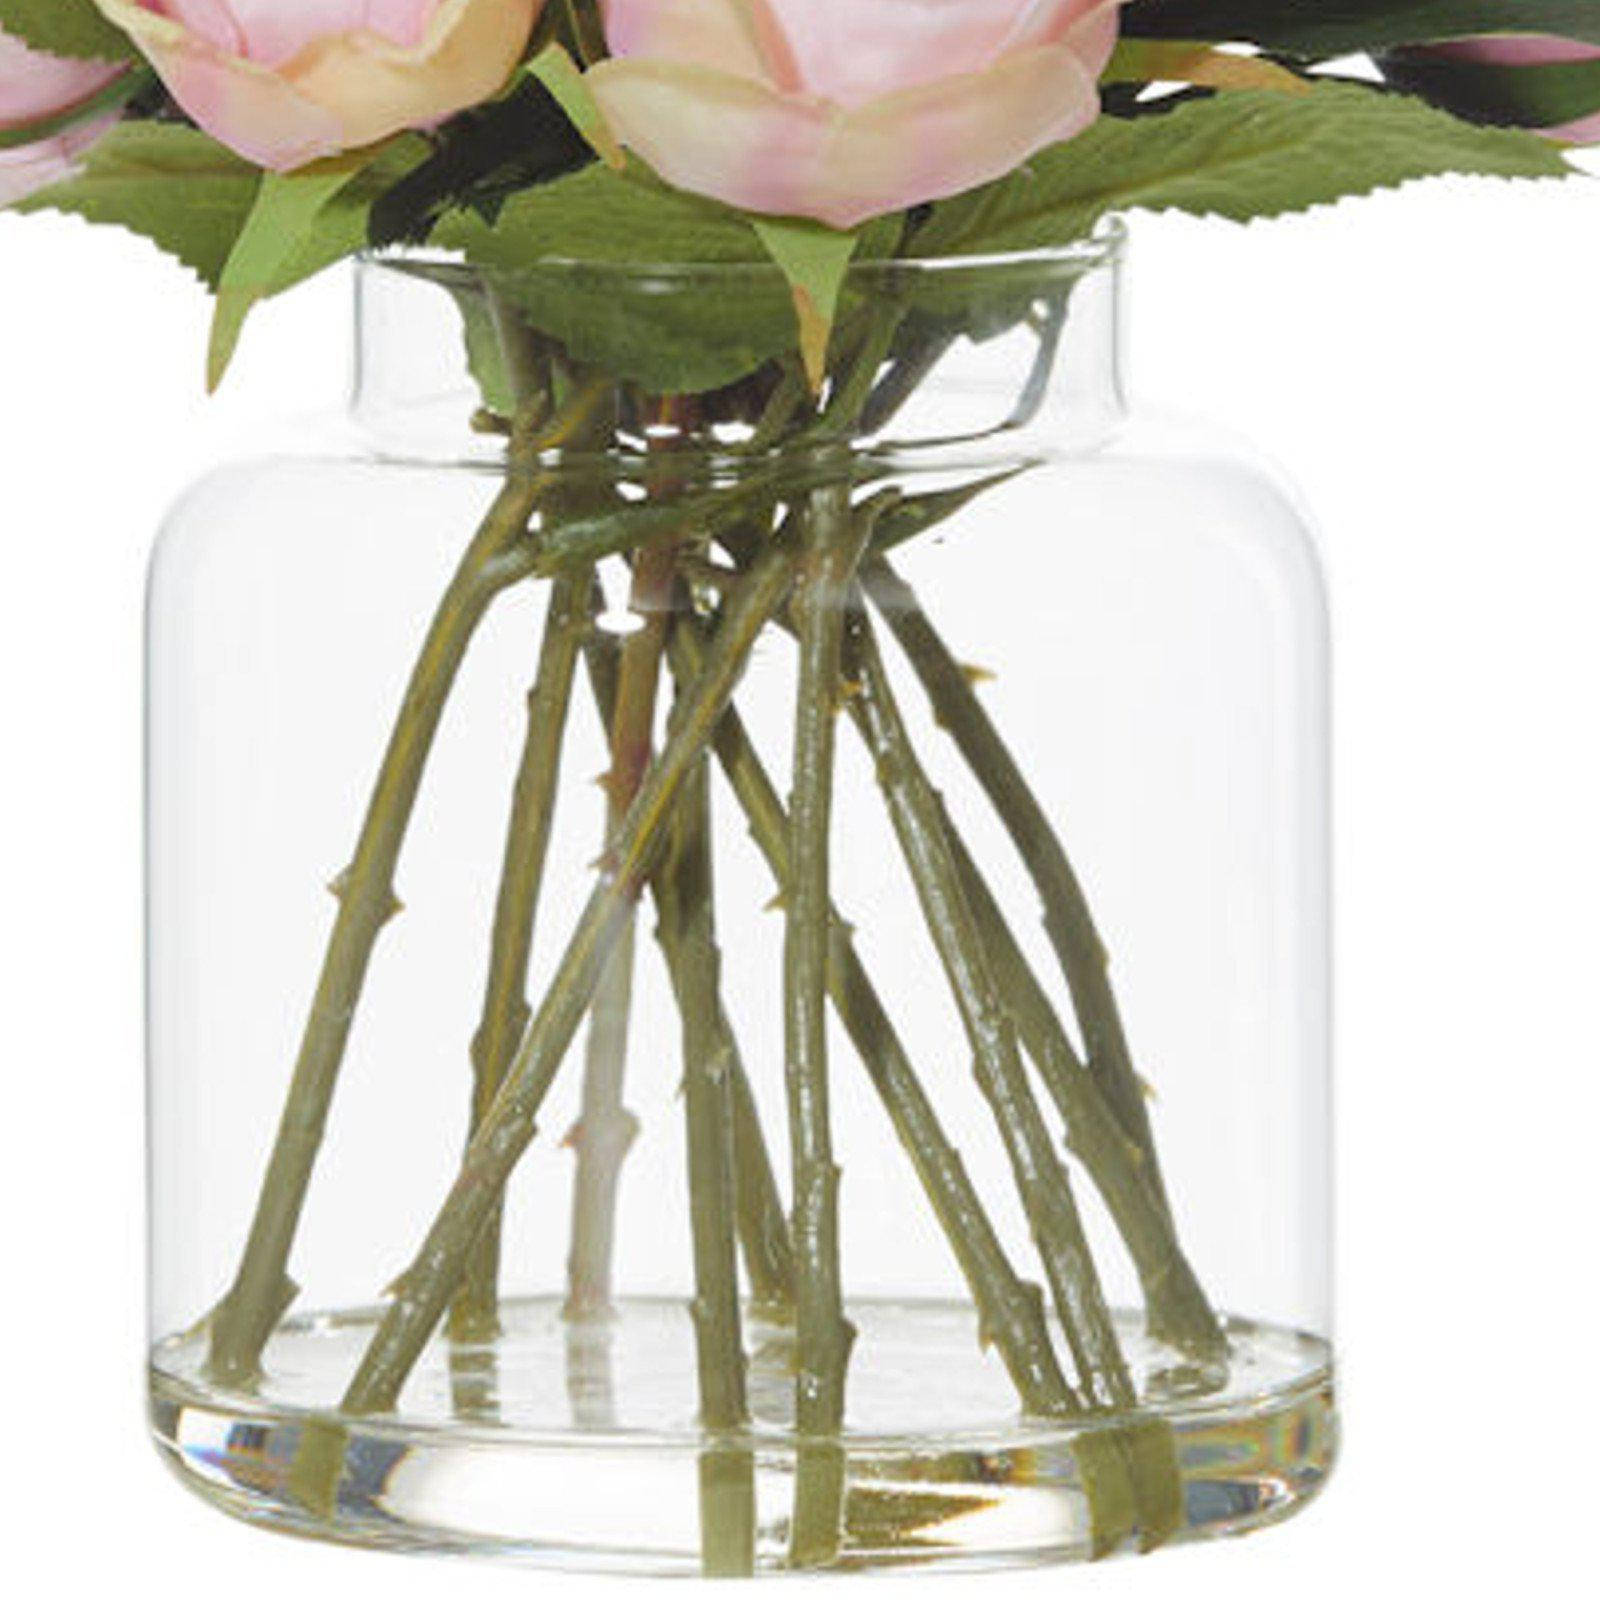 Mini Rose Bouquet With Cara Vase - Artificial Flower / Floral Arrangement-artificial flowers and plants-Chef's Quality Cookware